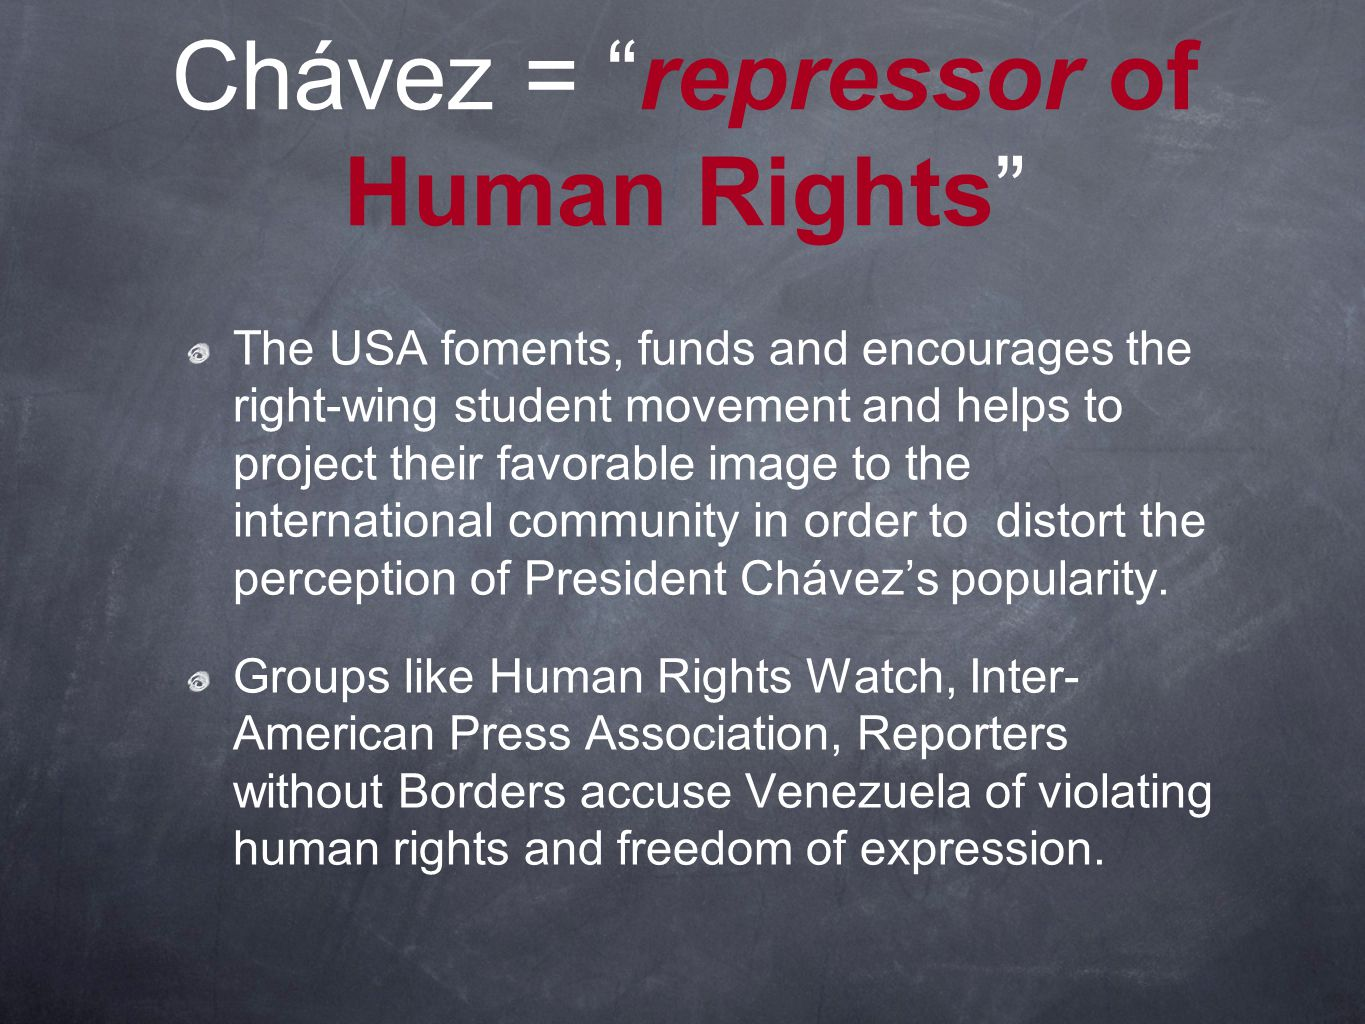 Chávez = repressor of Human Rights The USA foments, funds and encourages the right-wing student movement and helps to project their favorable image to the international community in order to distort the perception of President Chávez's popularity.